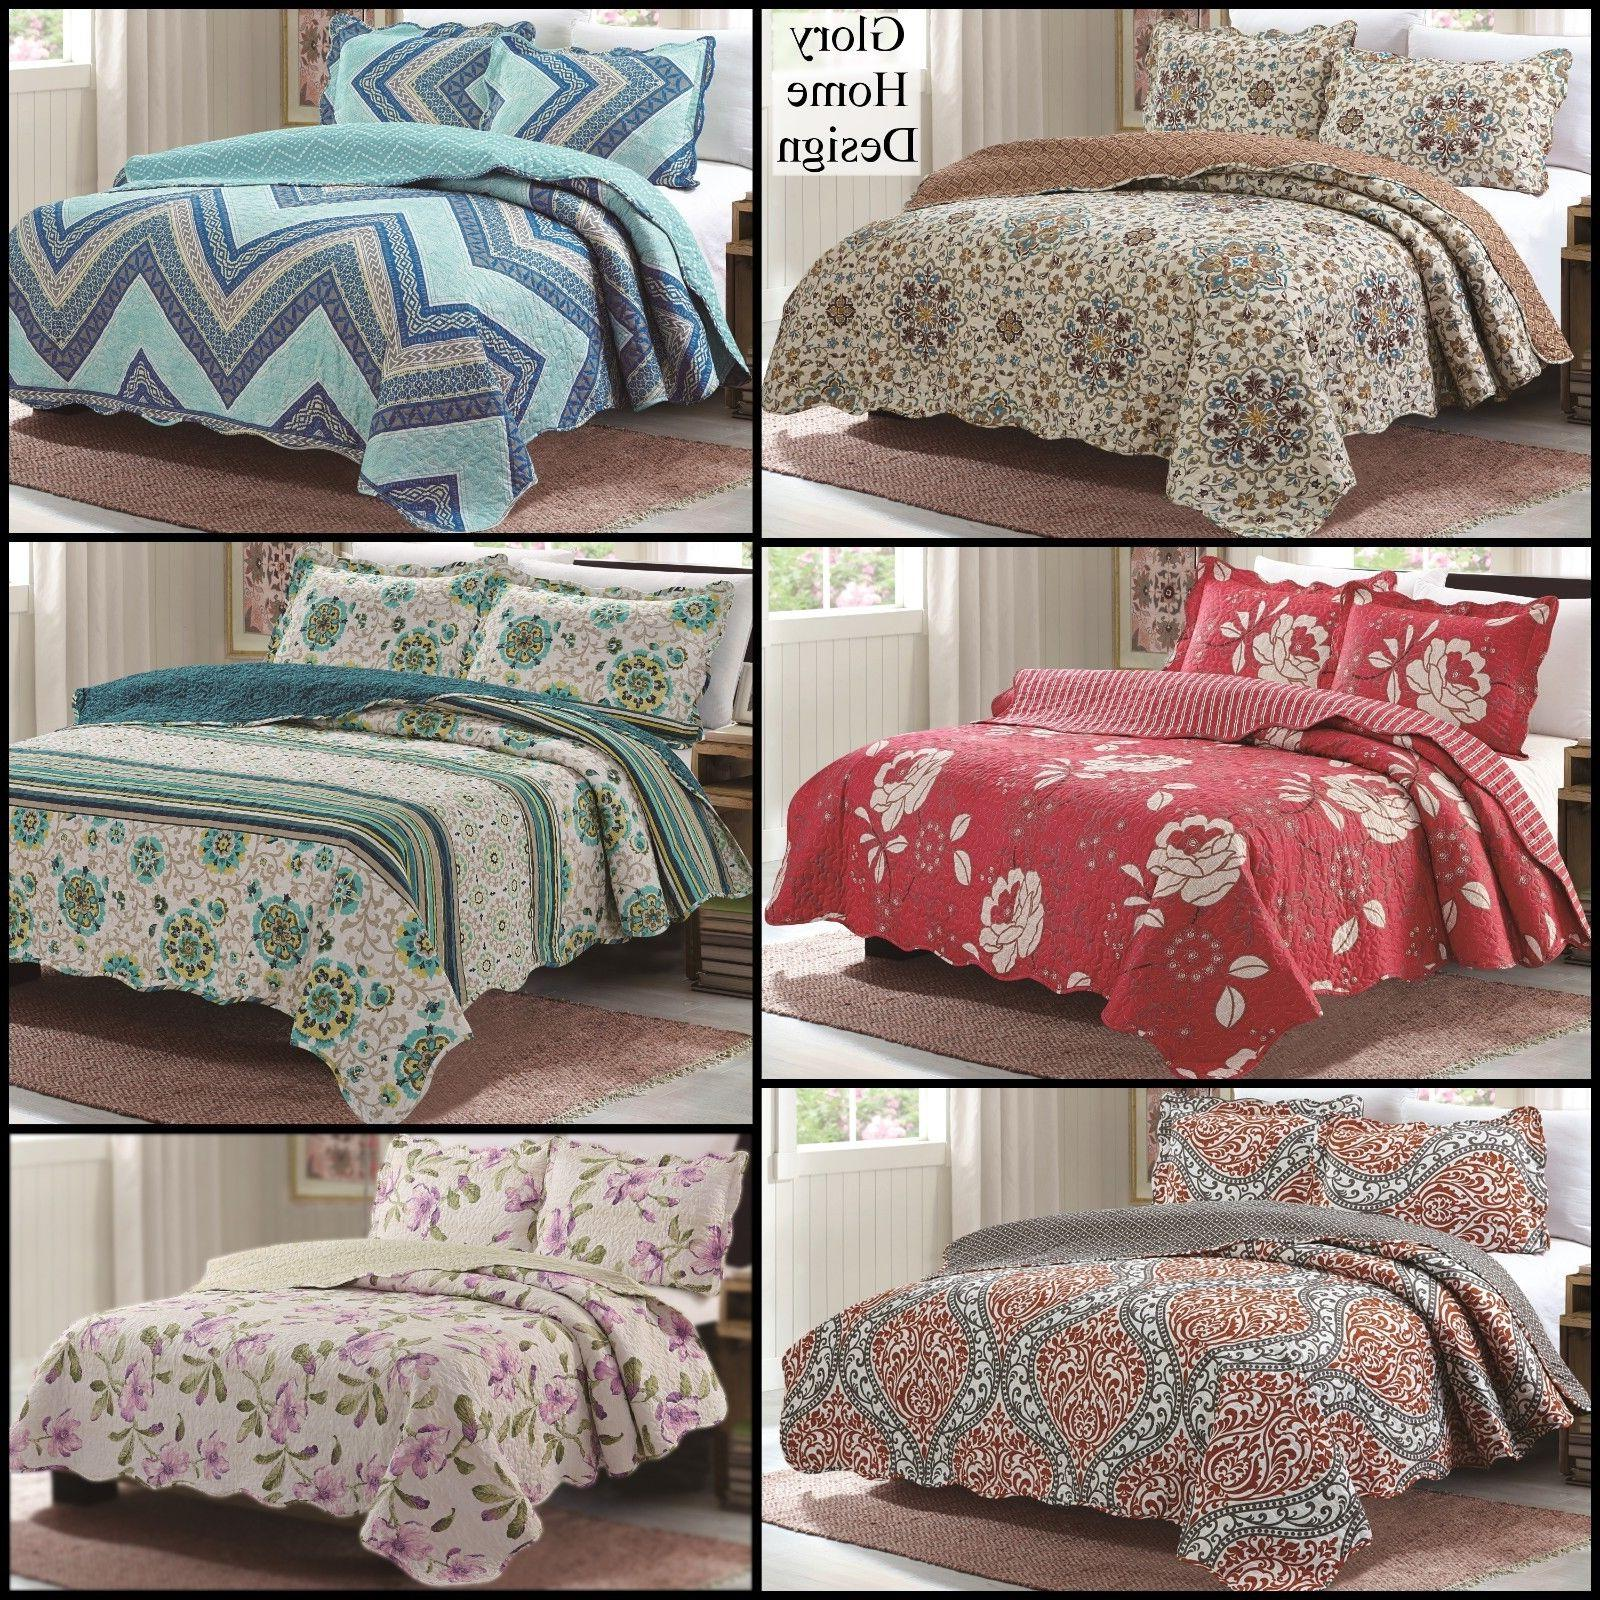 Lana - 3 Piece Reversible Quilt Set and shams